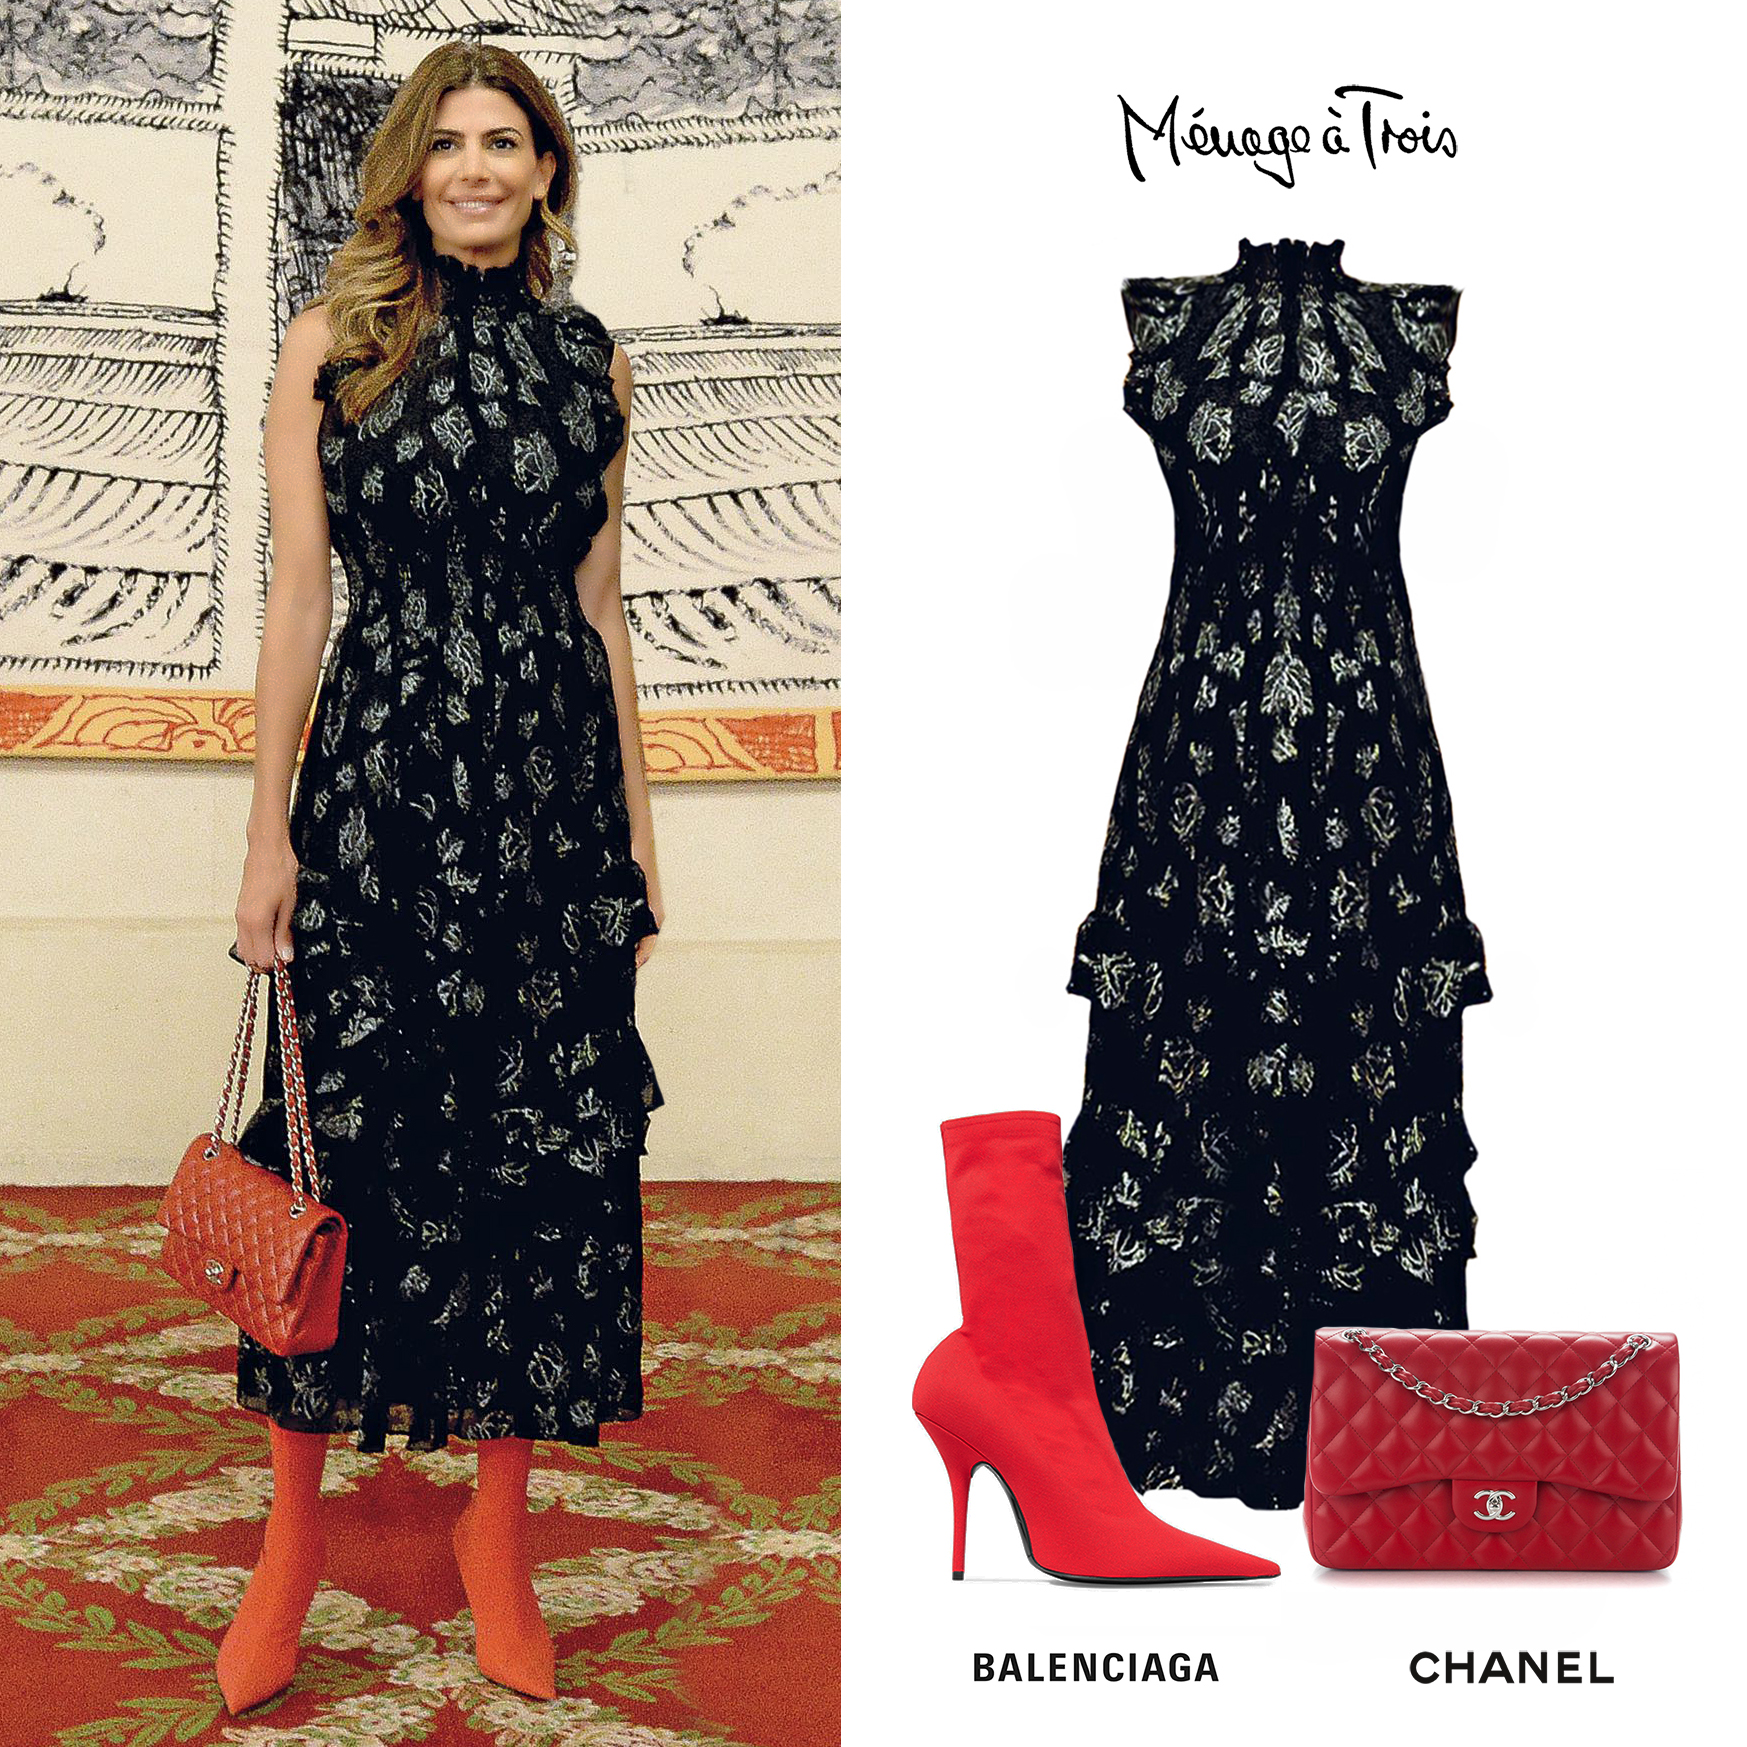 Juliana_Awada_Looks_Paris_2018_Sleeveless_Printed_Dress_Vestido_Estampado_Menage_a_trois_Botas_Rojas_Balenciaga_Over_The_Knee_Boots_Red_Cartera_255_chanel_Bag.jpg